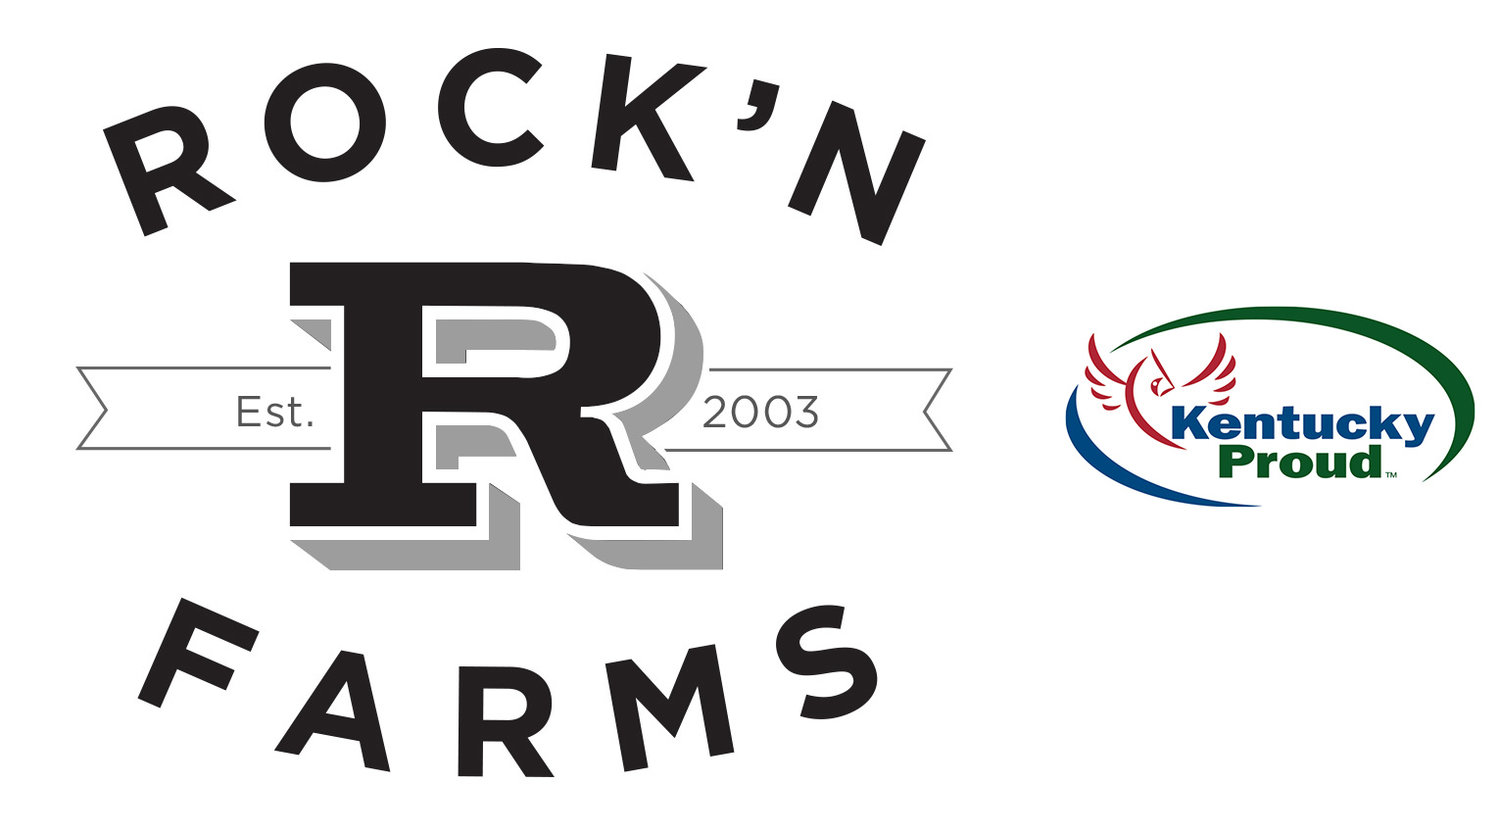 Rock'n R Farms